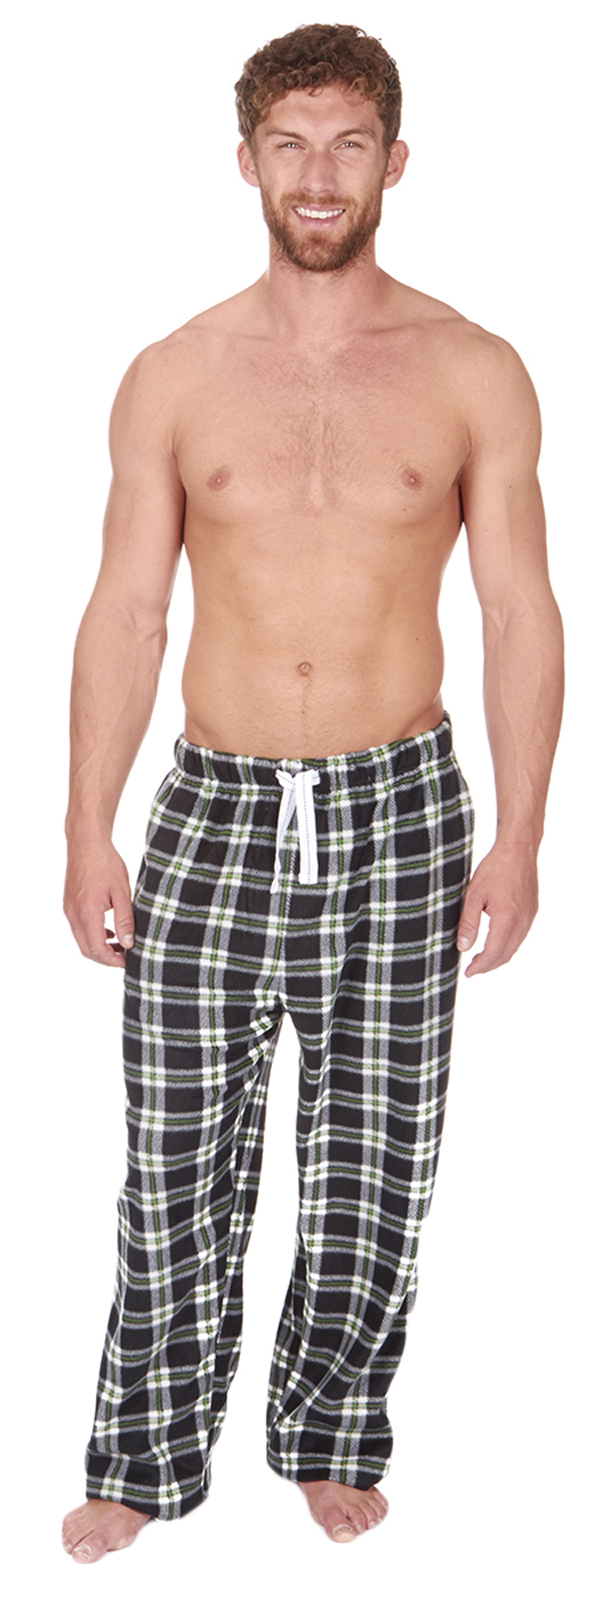 Enjoy free shipping and easy returns every day at Kohl's. Find great deals on Mens Lounge Pants Sleepwear at Kohl's today!